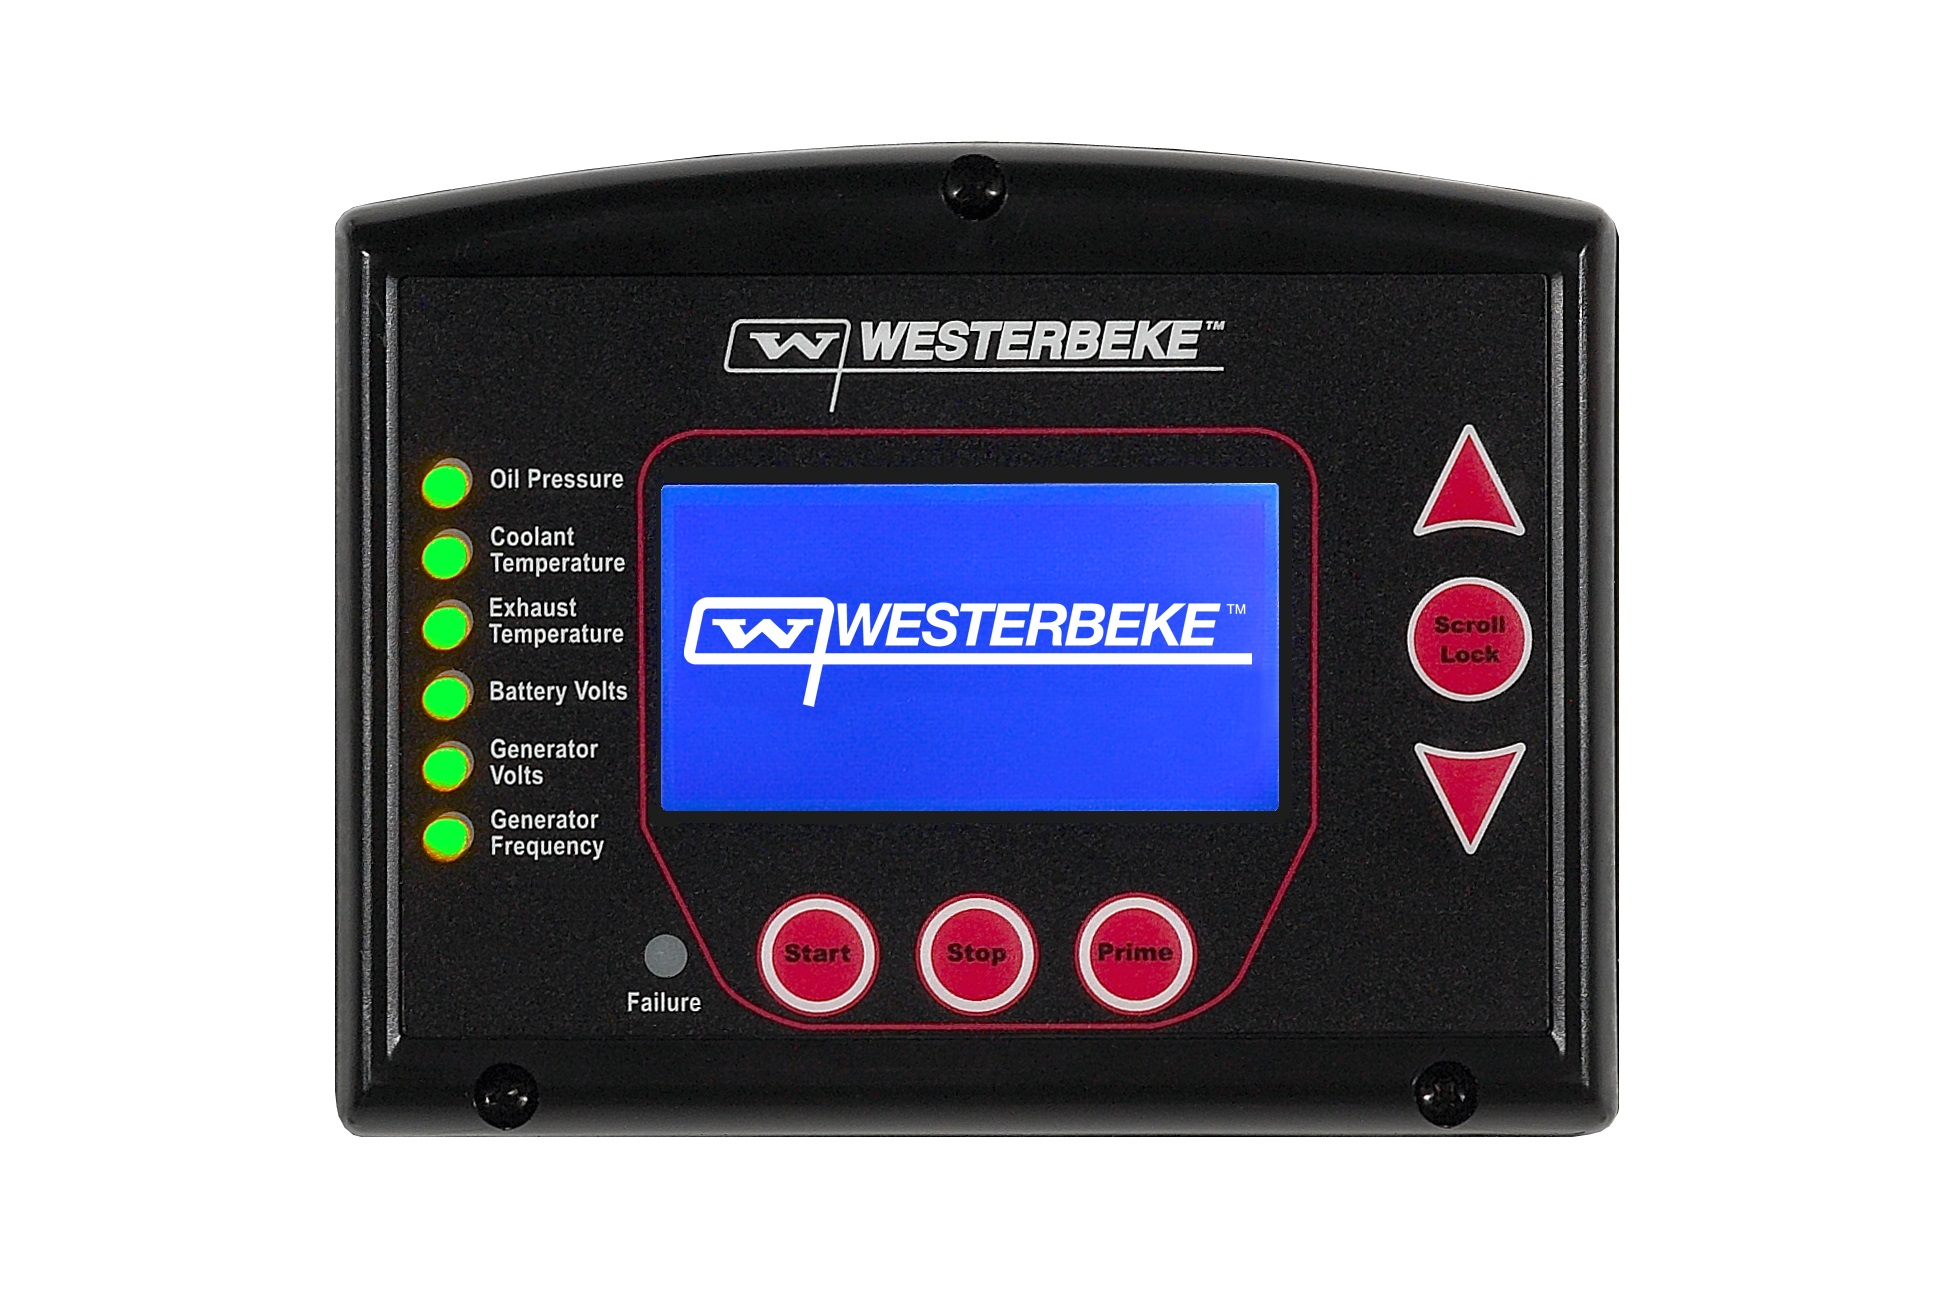 - Modern DigitalThe D-NET range of diesel marine generators is fully automatic, using state of the art Westerlink or optional NMEA 2000 canbus communication technology. The modern D-NET panel features 'at a glance' lights that indicate proper operation, monitoring battery and generator voltages, frequency, oil pressure, coolant and exhaust temperature.